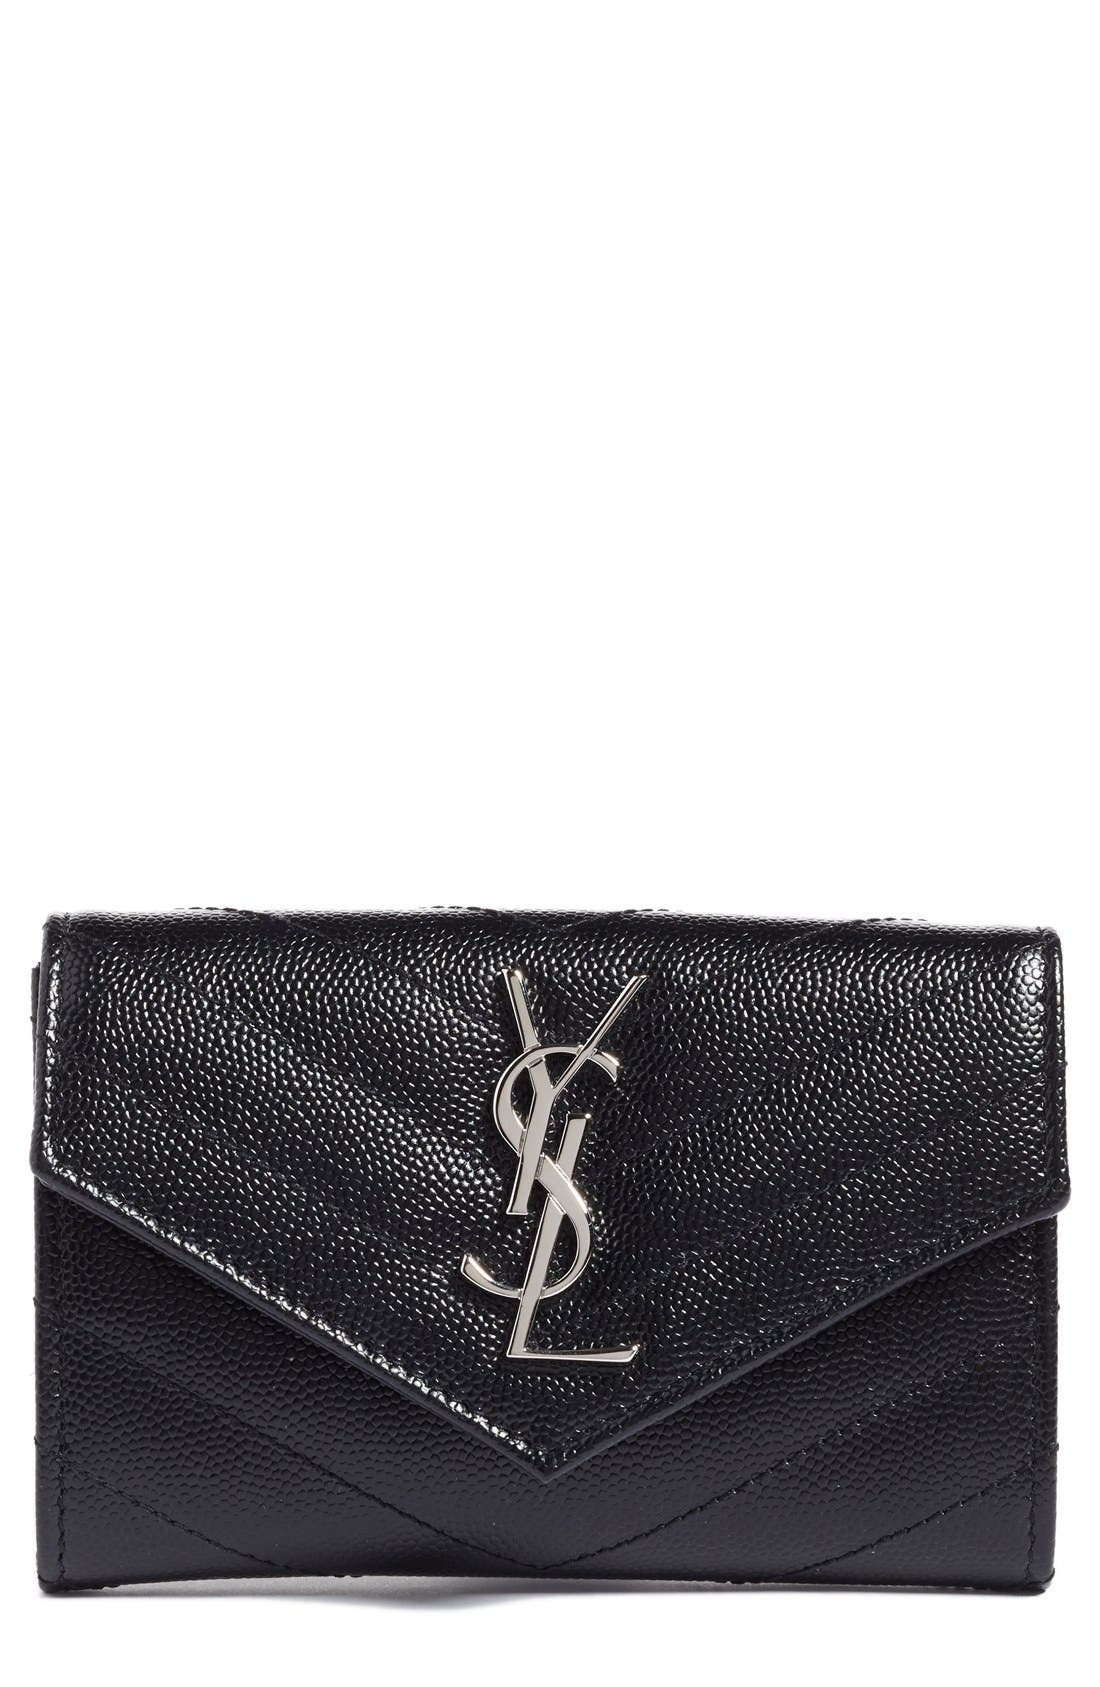 Alternate Image 1 Selected - Saint Laurent 'Small Monogram' Leather French Wallet